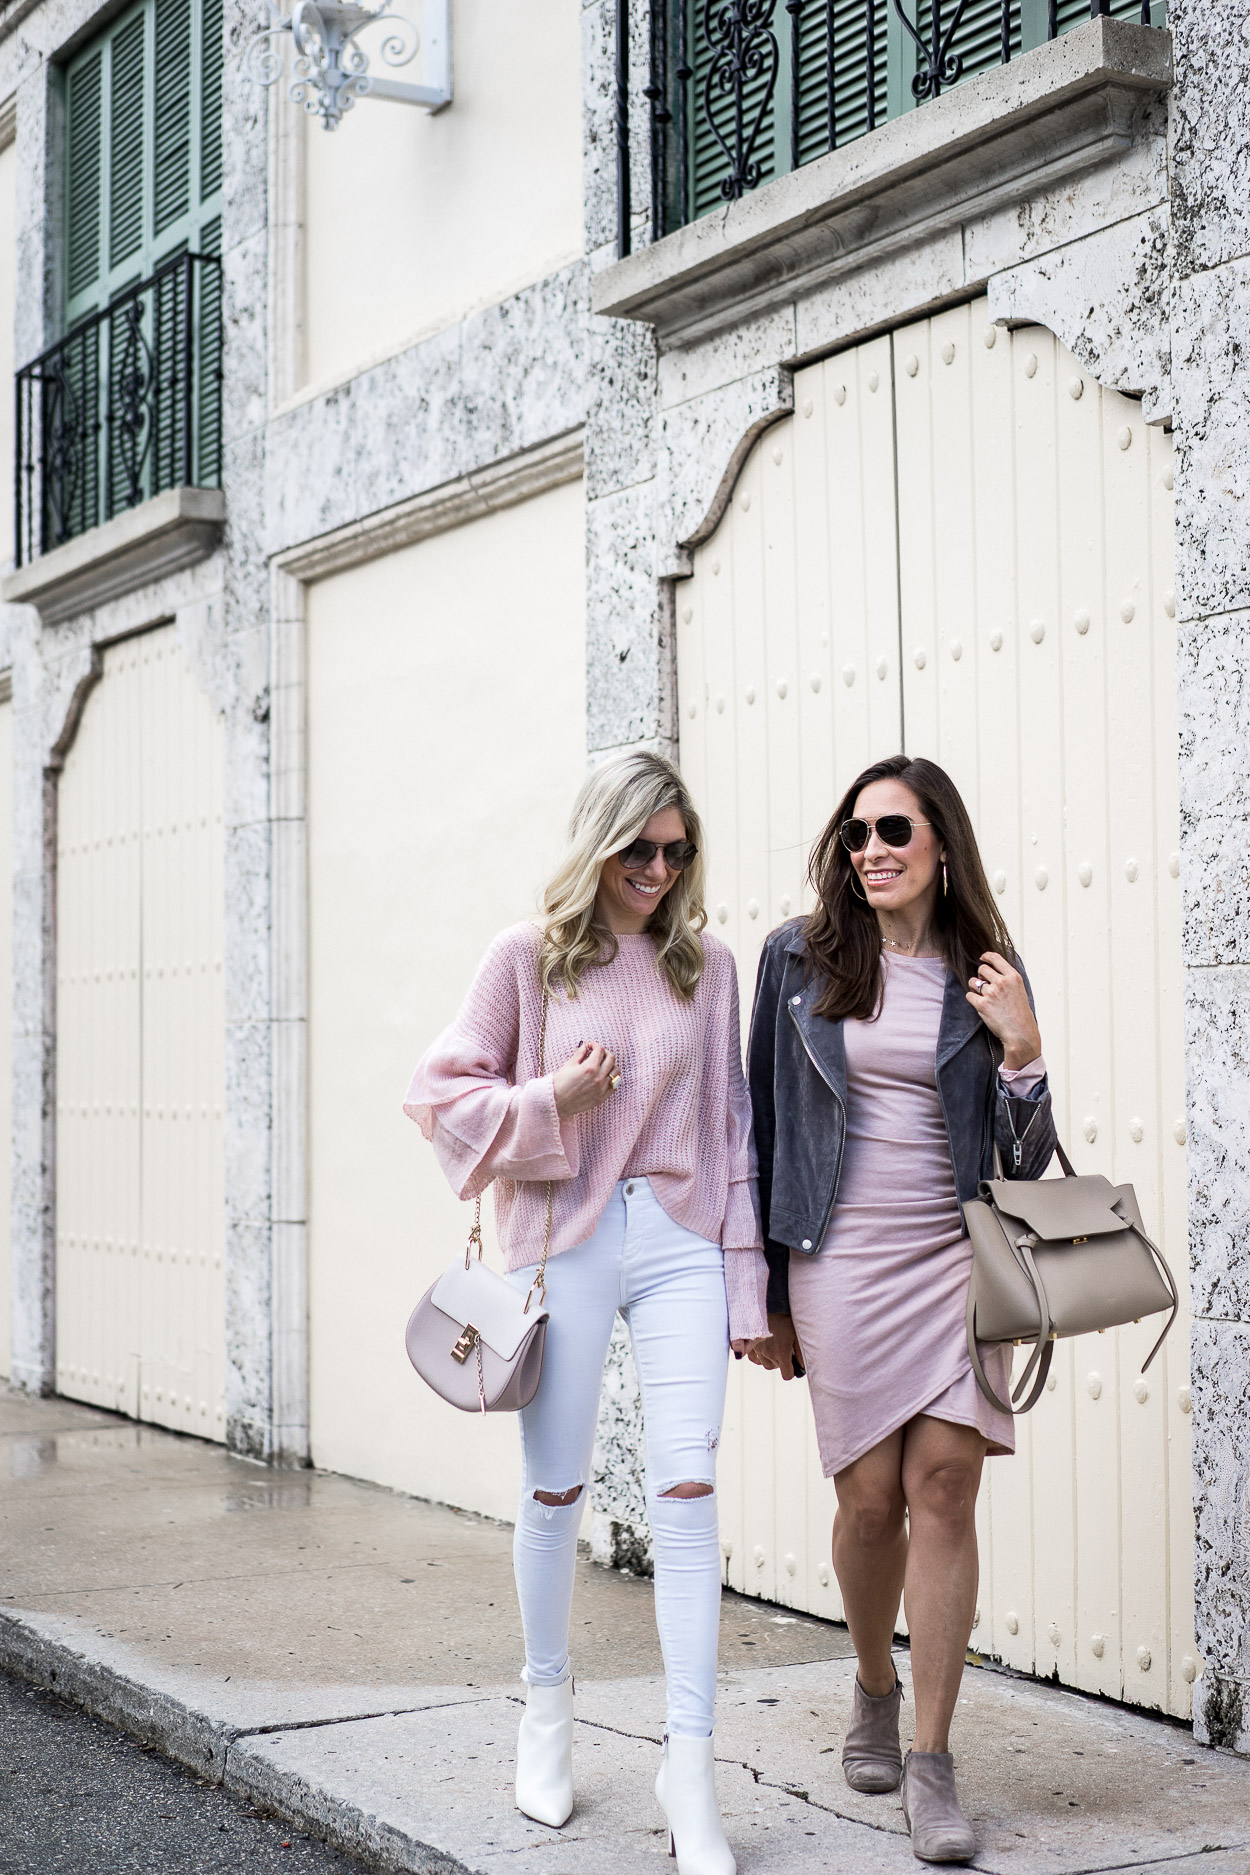 Leith ruched dress and blush Chicwish sweater matched perfectly for blogger A Glam Lifestyle's birthday celebrations